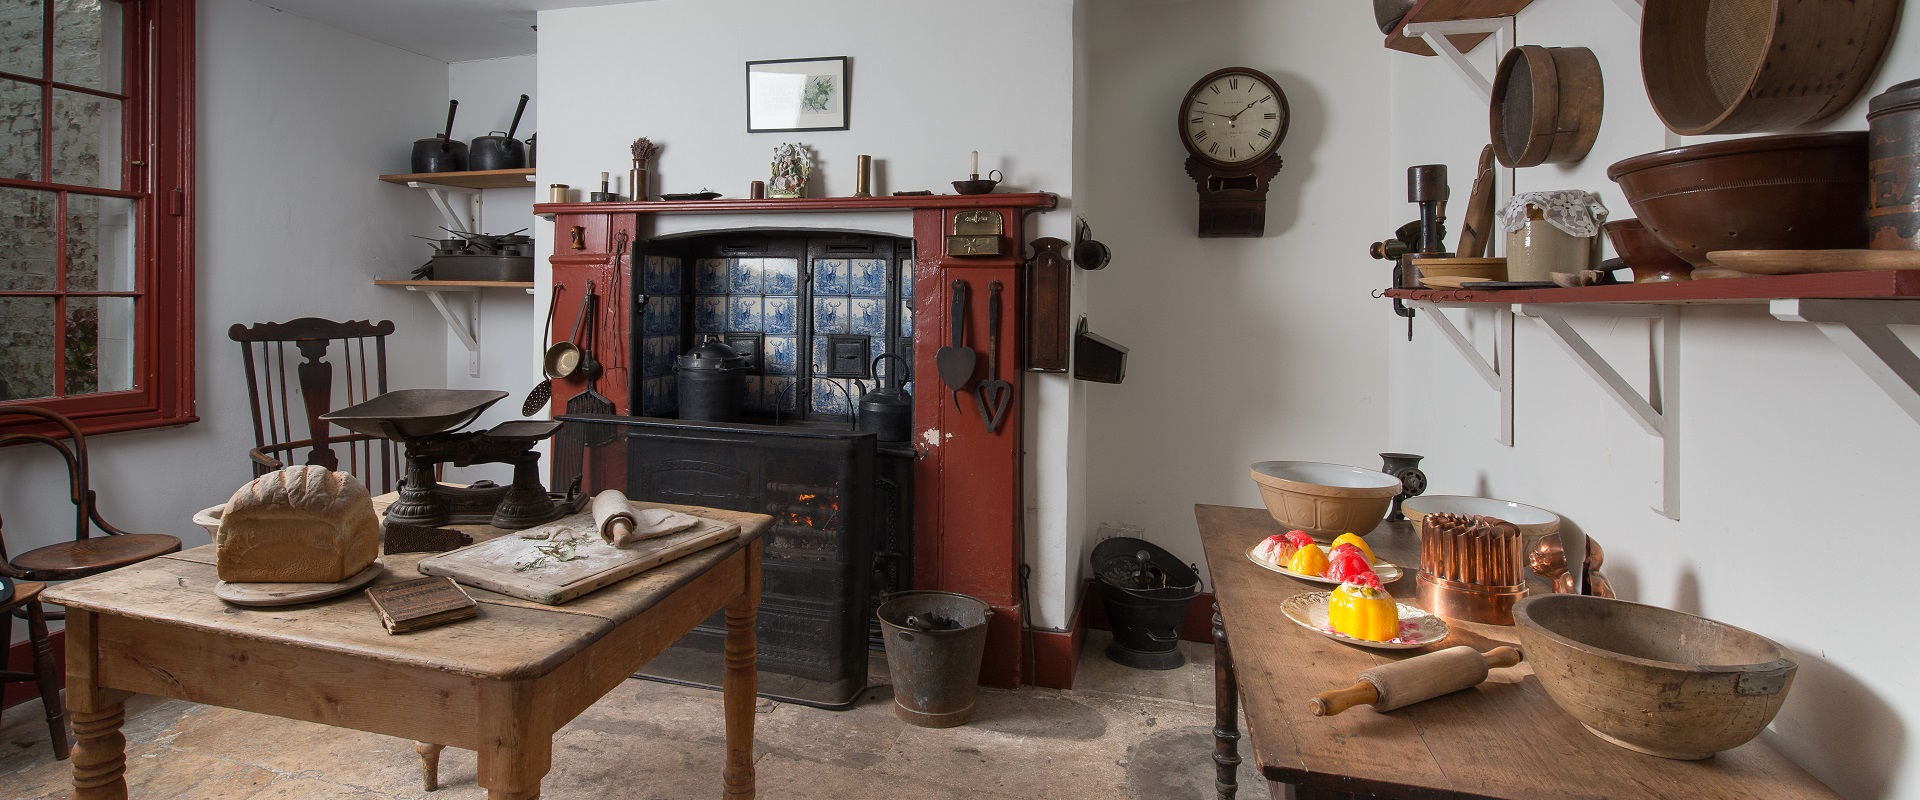 The kitchen in the Holst Victorian House